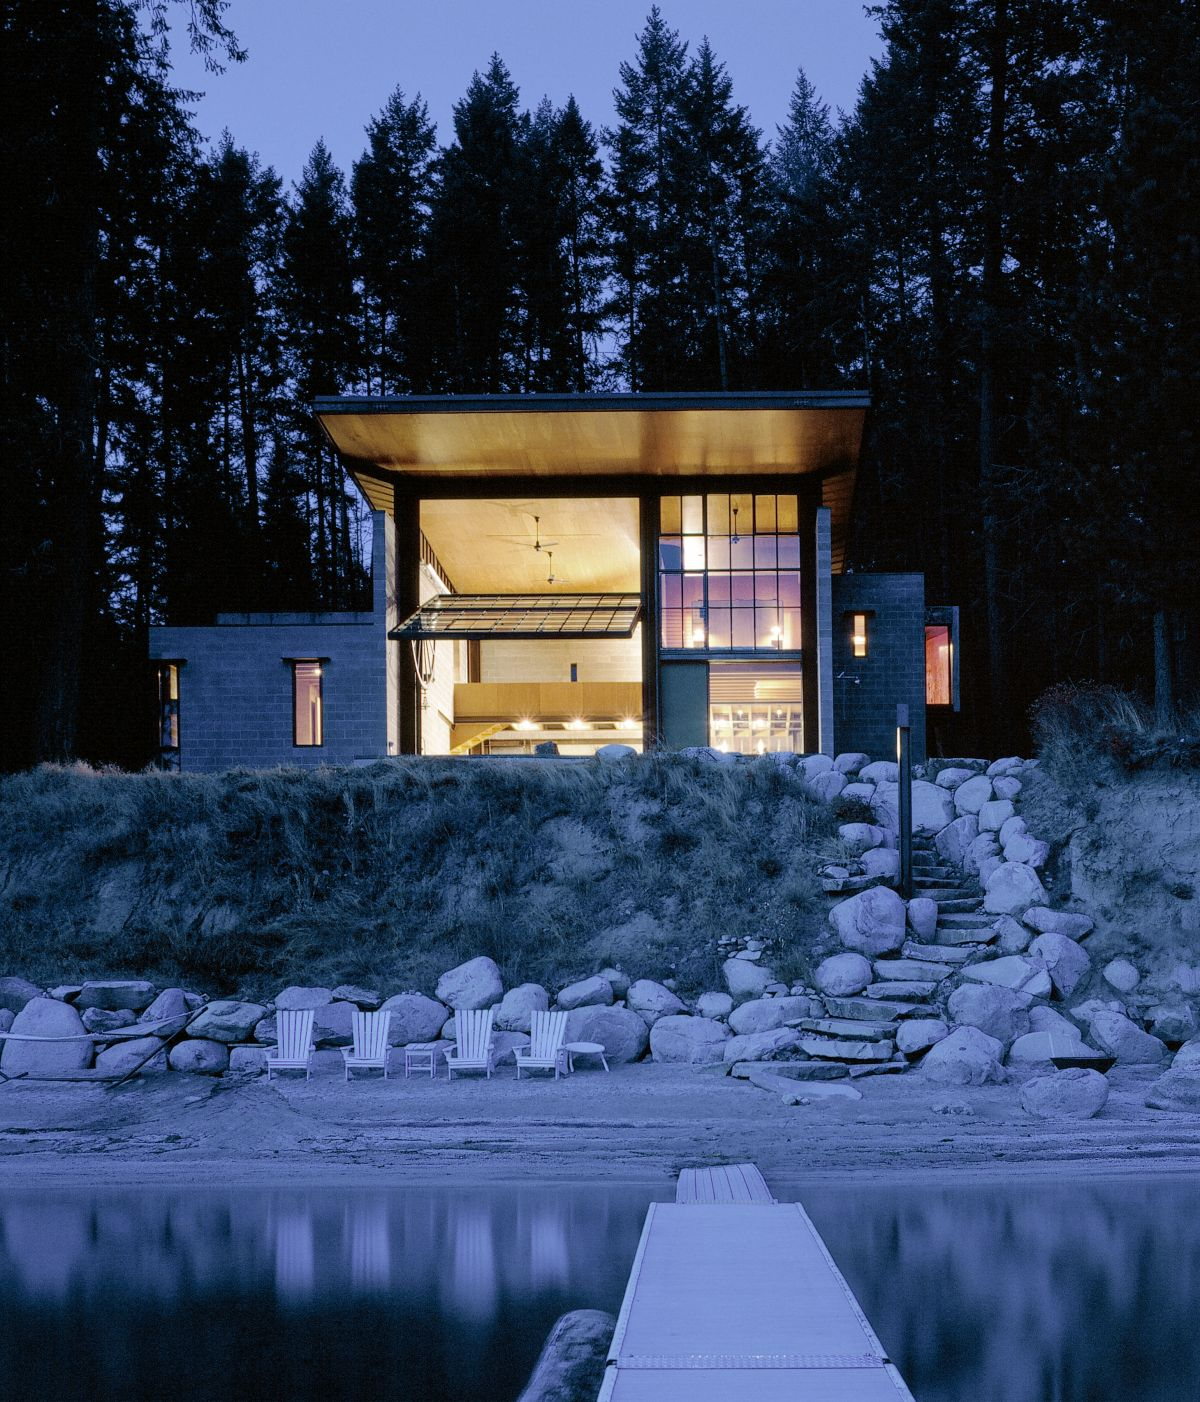 Chicken Point Cabin - Olson Kundig Architects, Arquitectura, casas, diseño